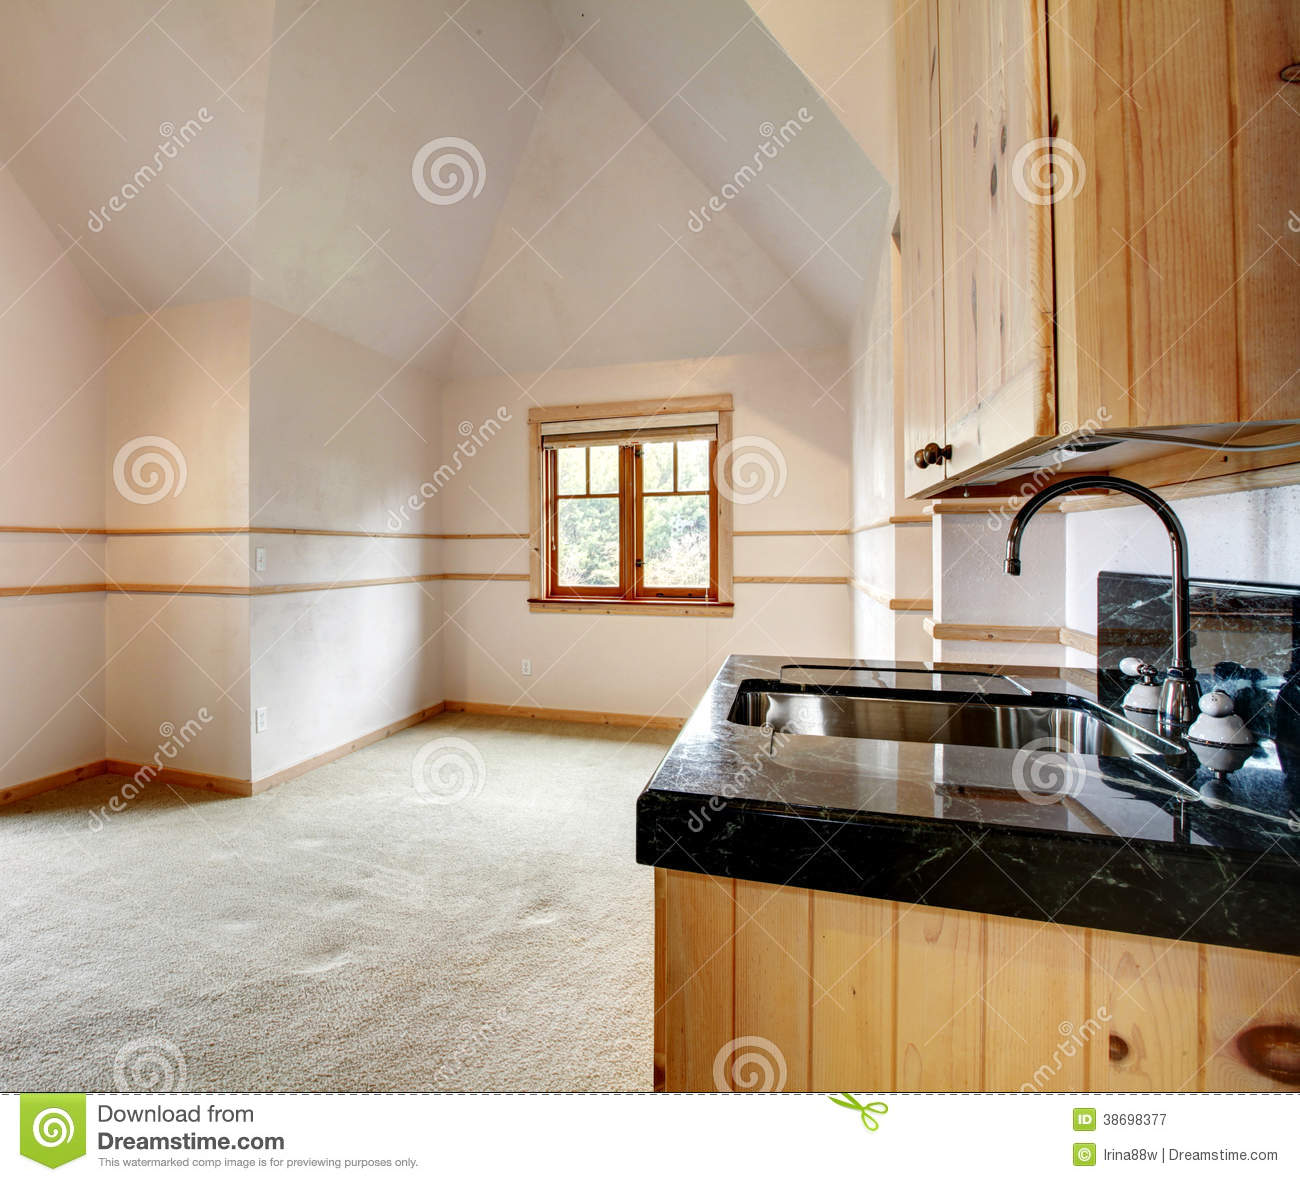 Empty Kitchen Cupboard: Spacious Empty Kitchen With Cathedral Ceiling Stock Image